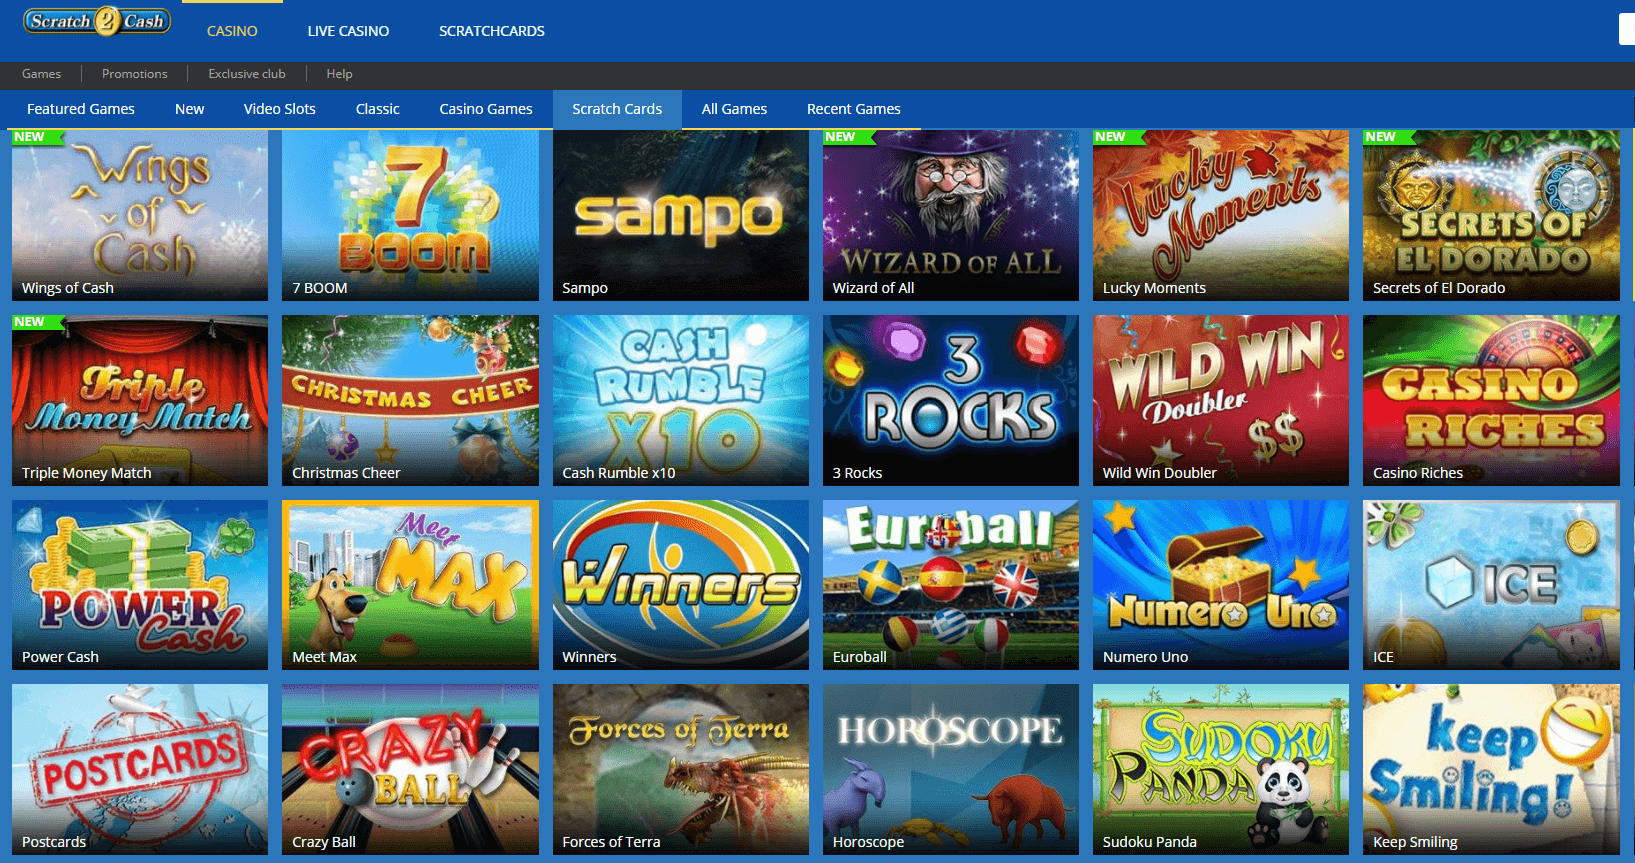 Online casino Scratch Card games to play in NZ